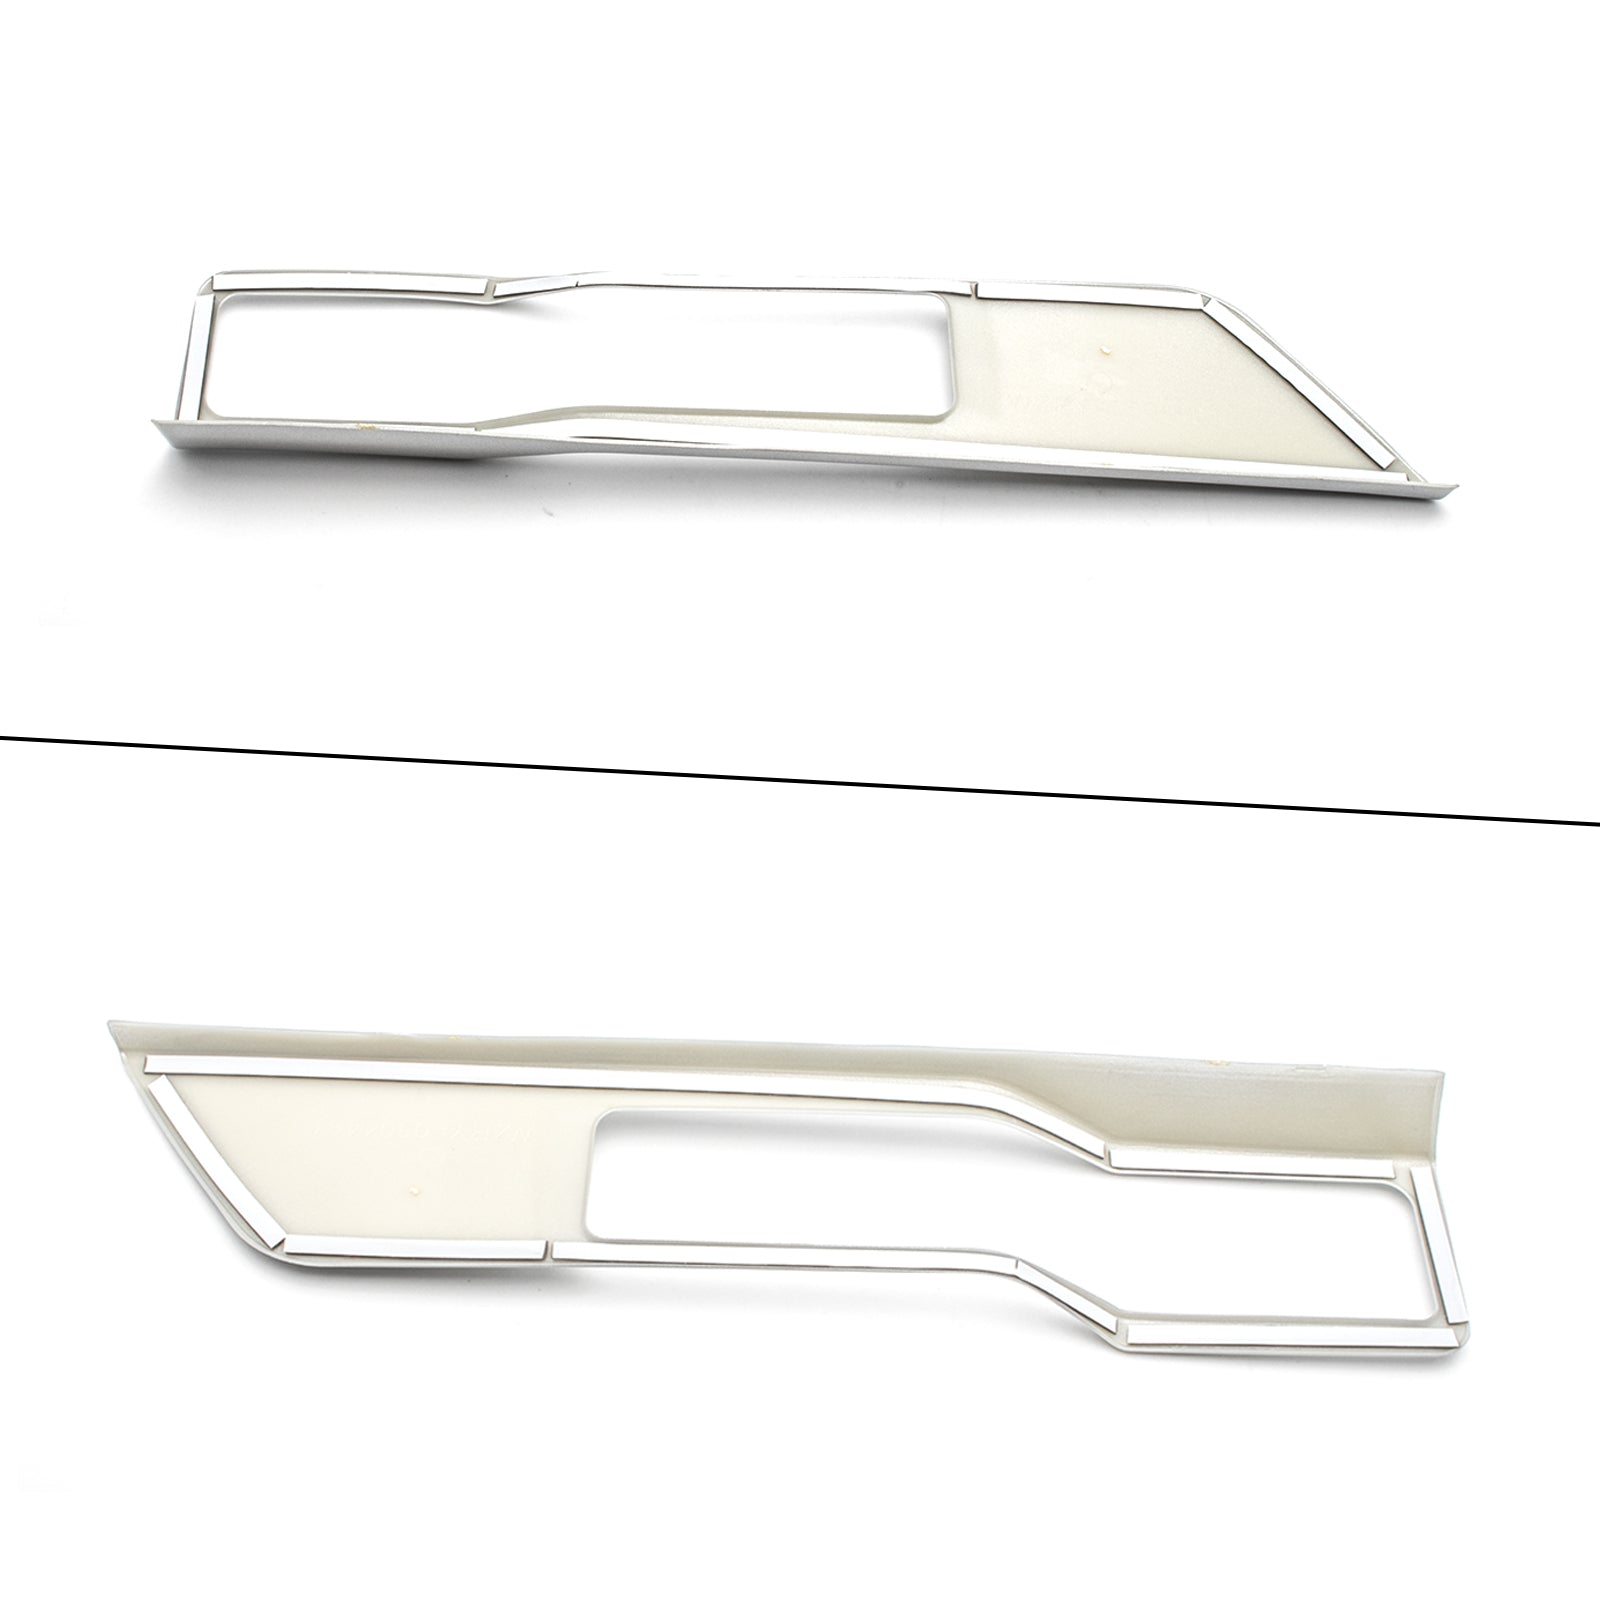 ABS Chrome Car Central Console Gear Panel Parking Hand